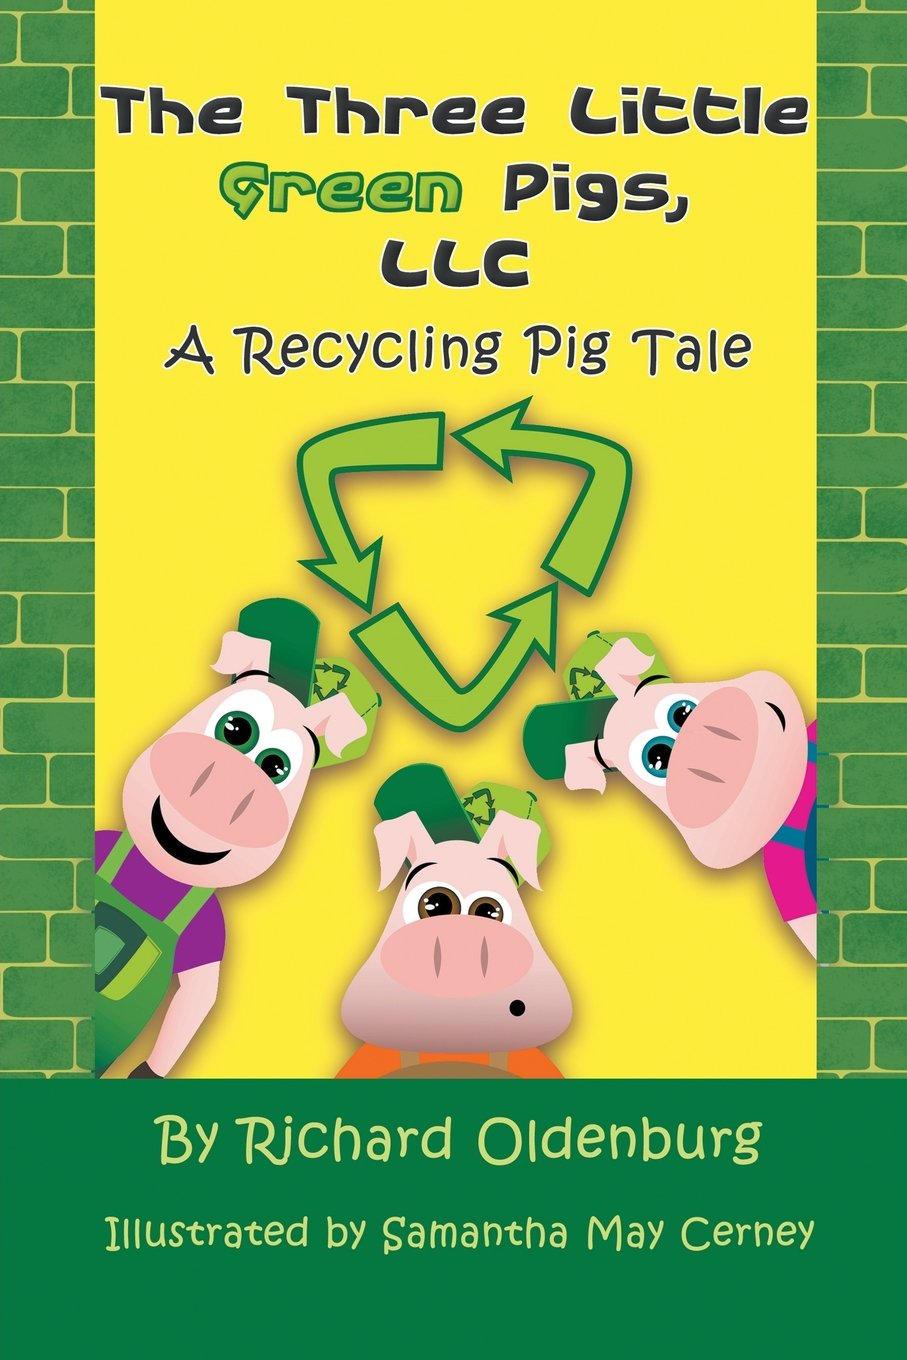 Download The Three Little Green Pigs, LLC: A Recycling Pig Tale pdf